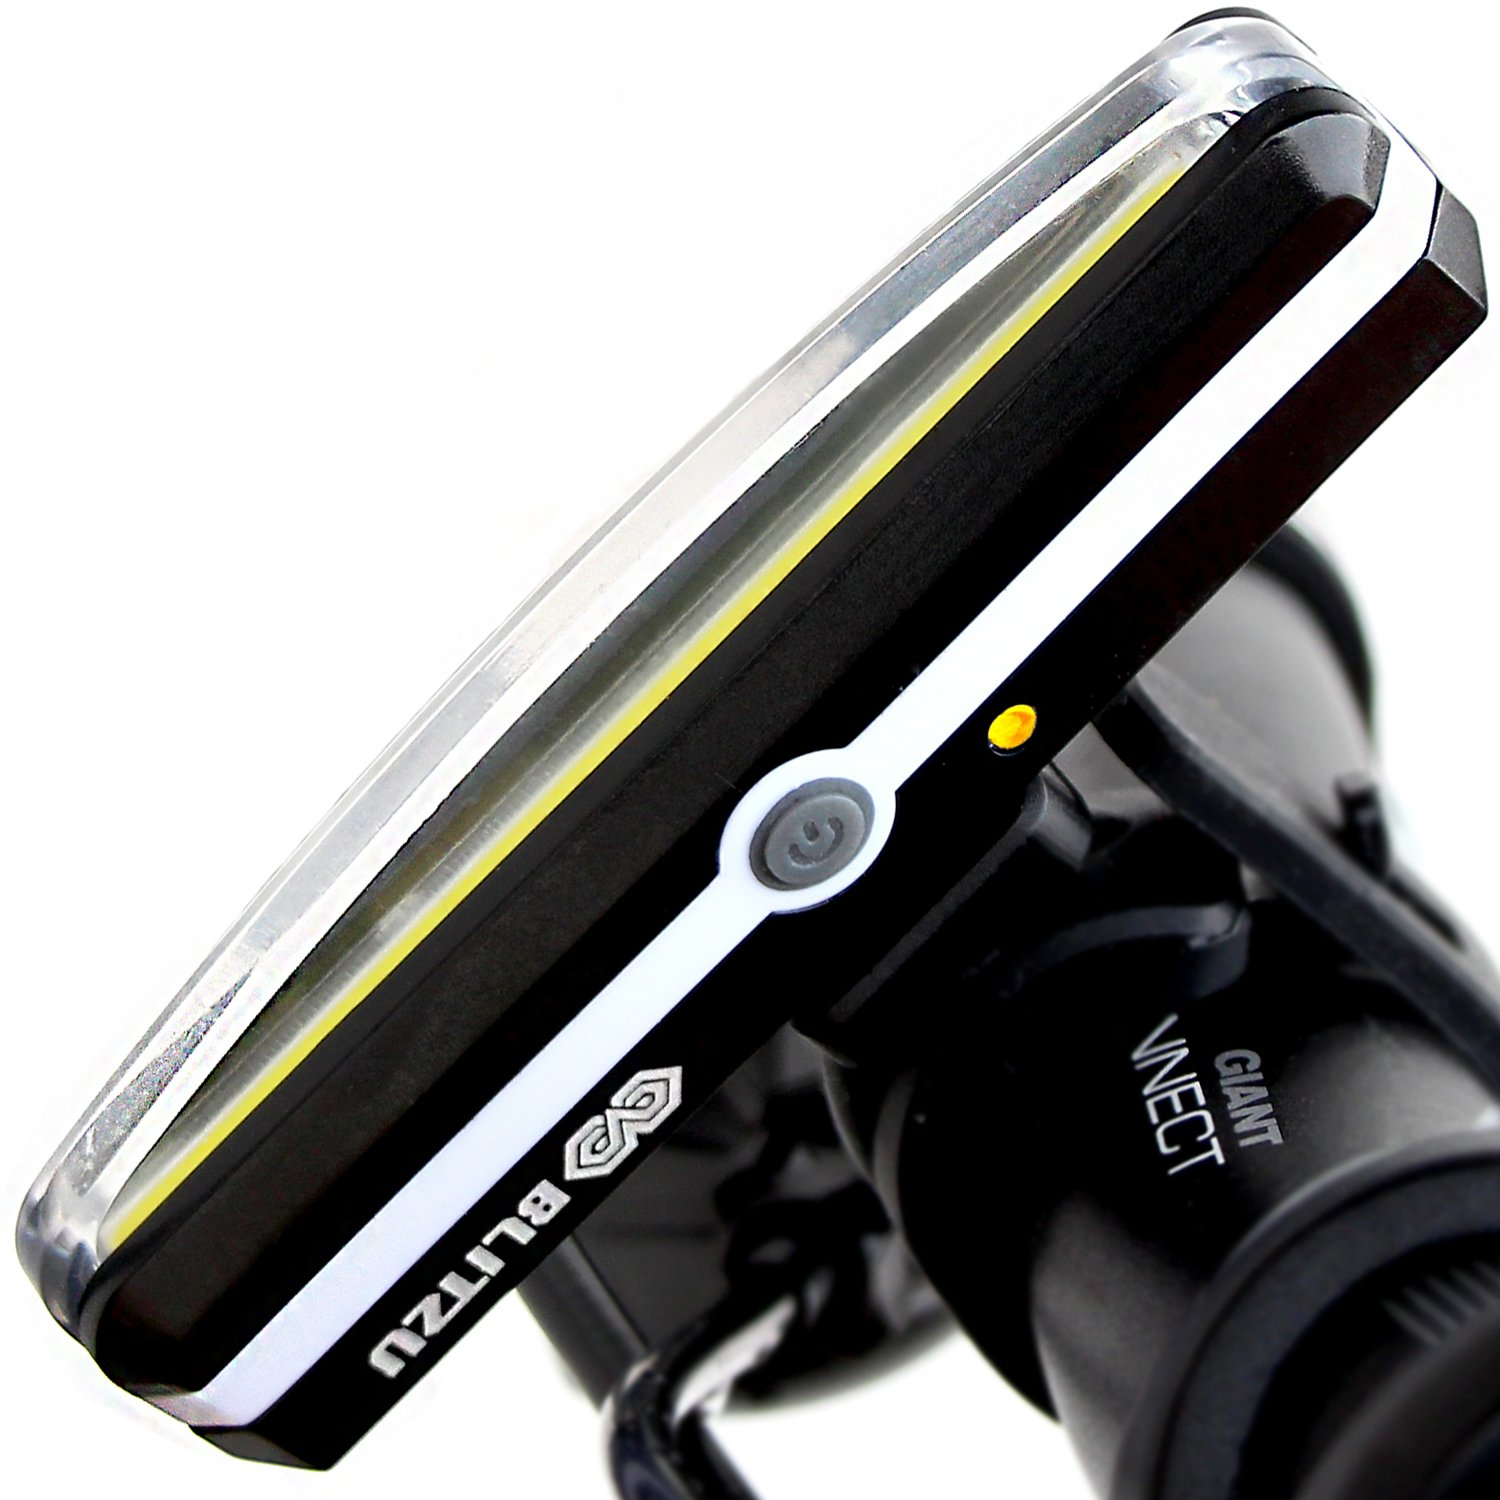 Top 9 Best Bike Lights Reviews in 2020 You Should Check Out 6